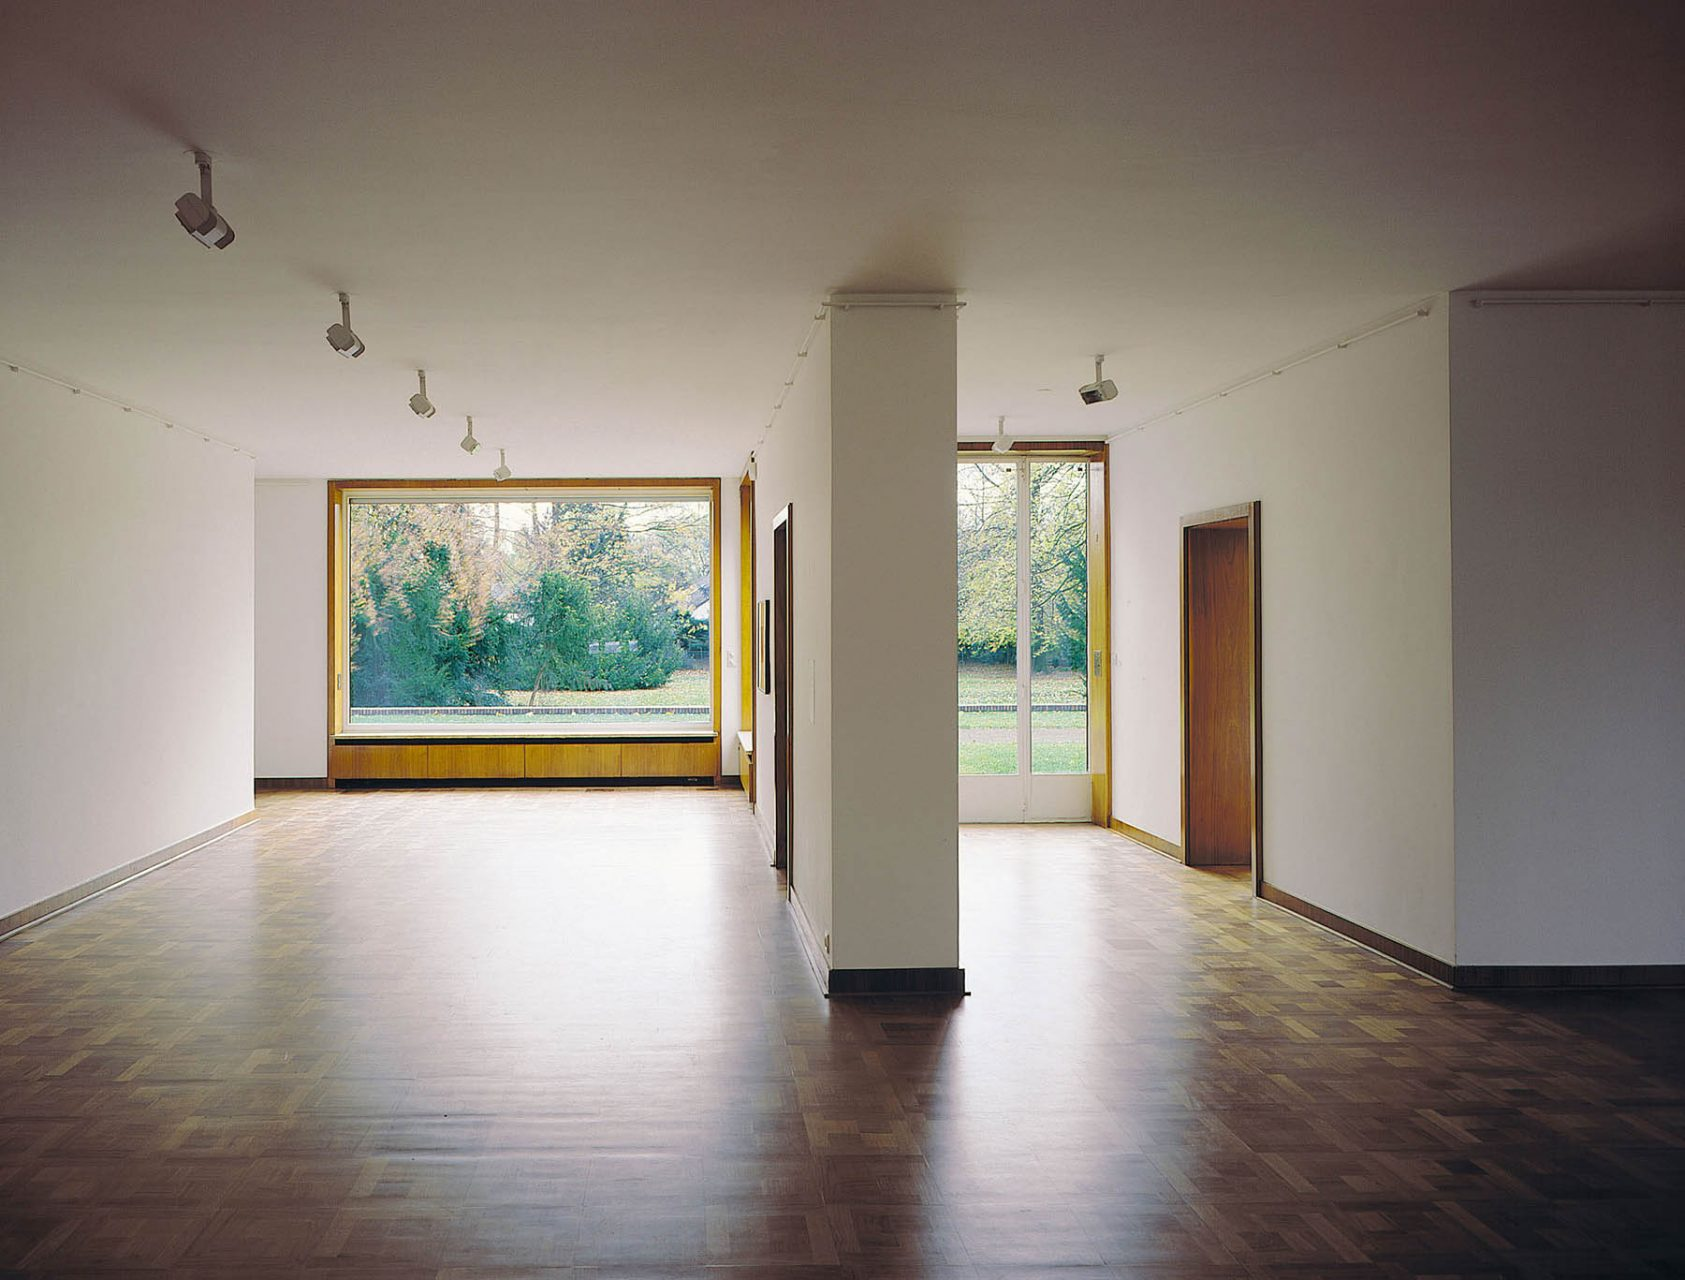 Haus Lange. Mies developed the interior design together with Lilly Reich.